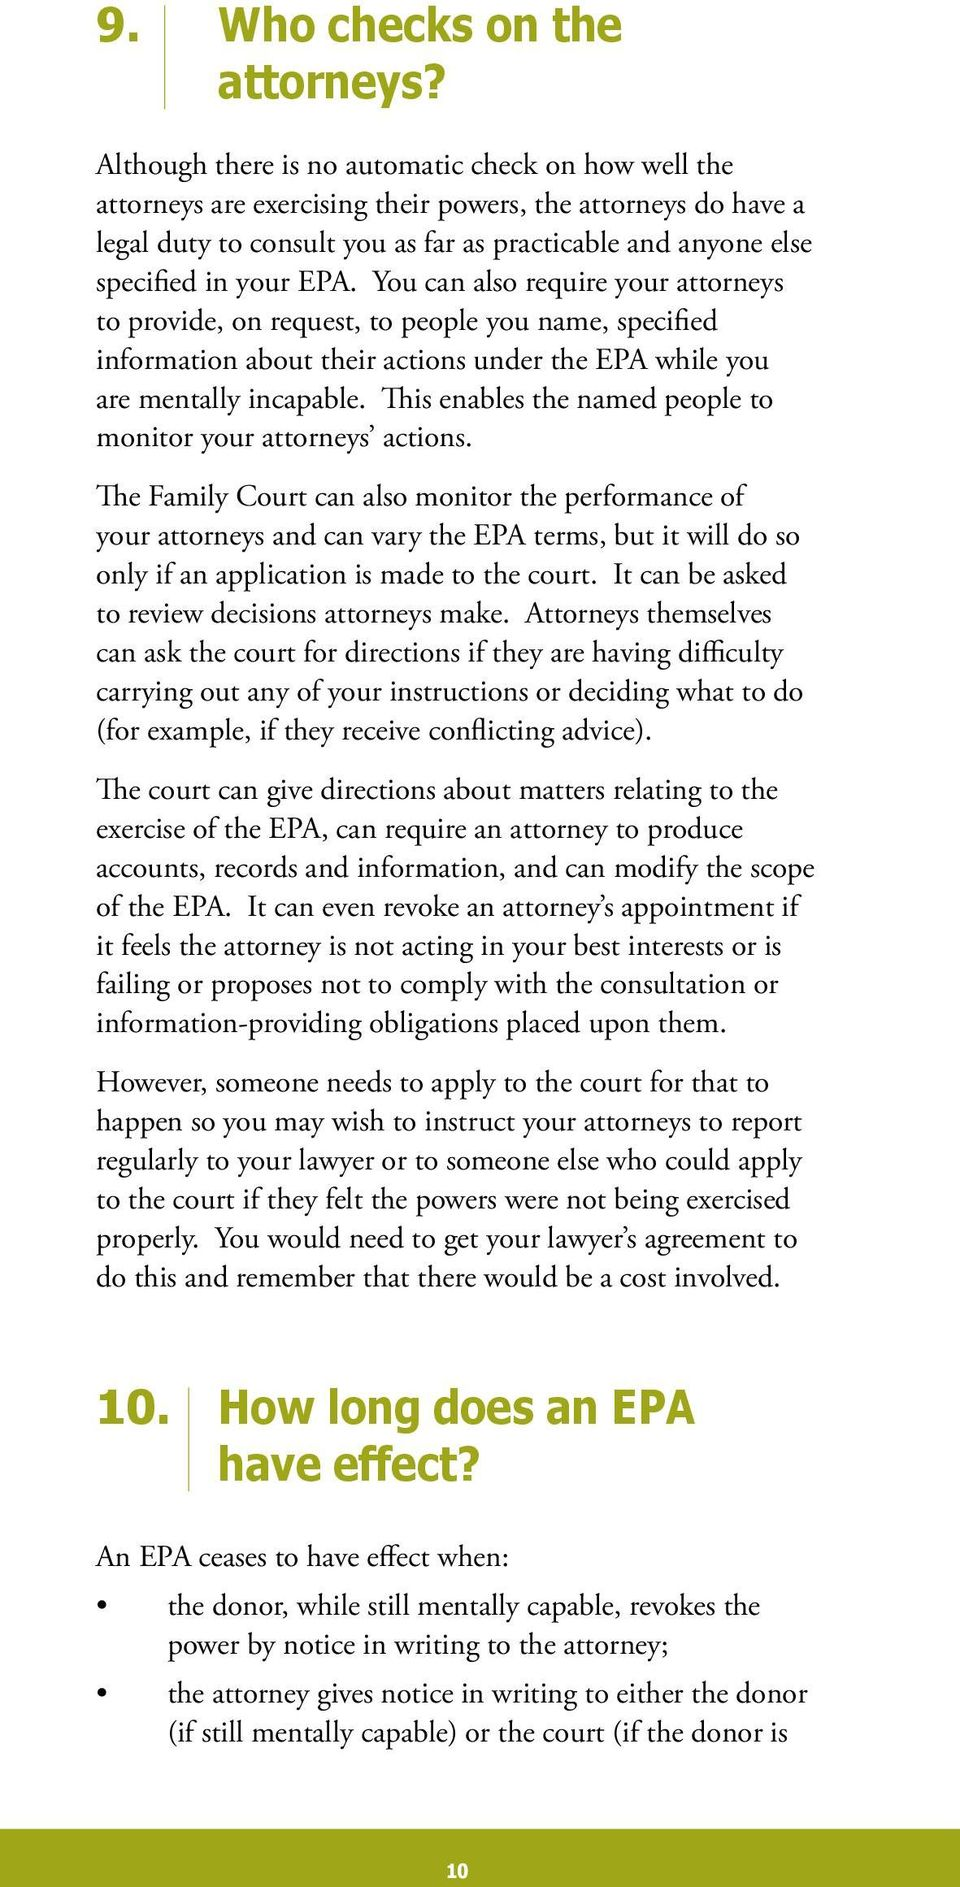 EPA. You can also require your attorneys to provide, on request, to people you name, specified information about their actions under the EPA while you are mentally incapable.